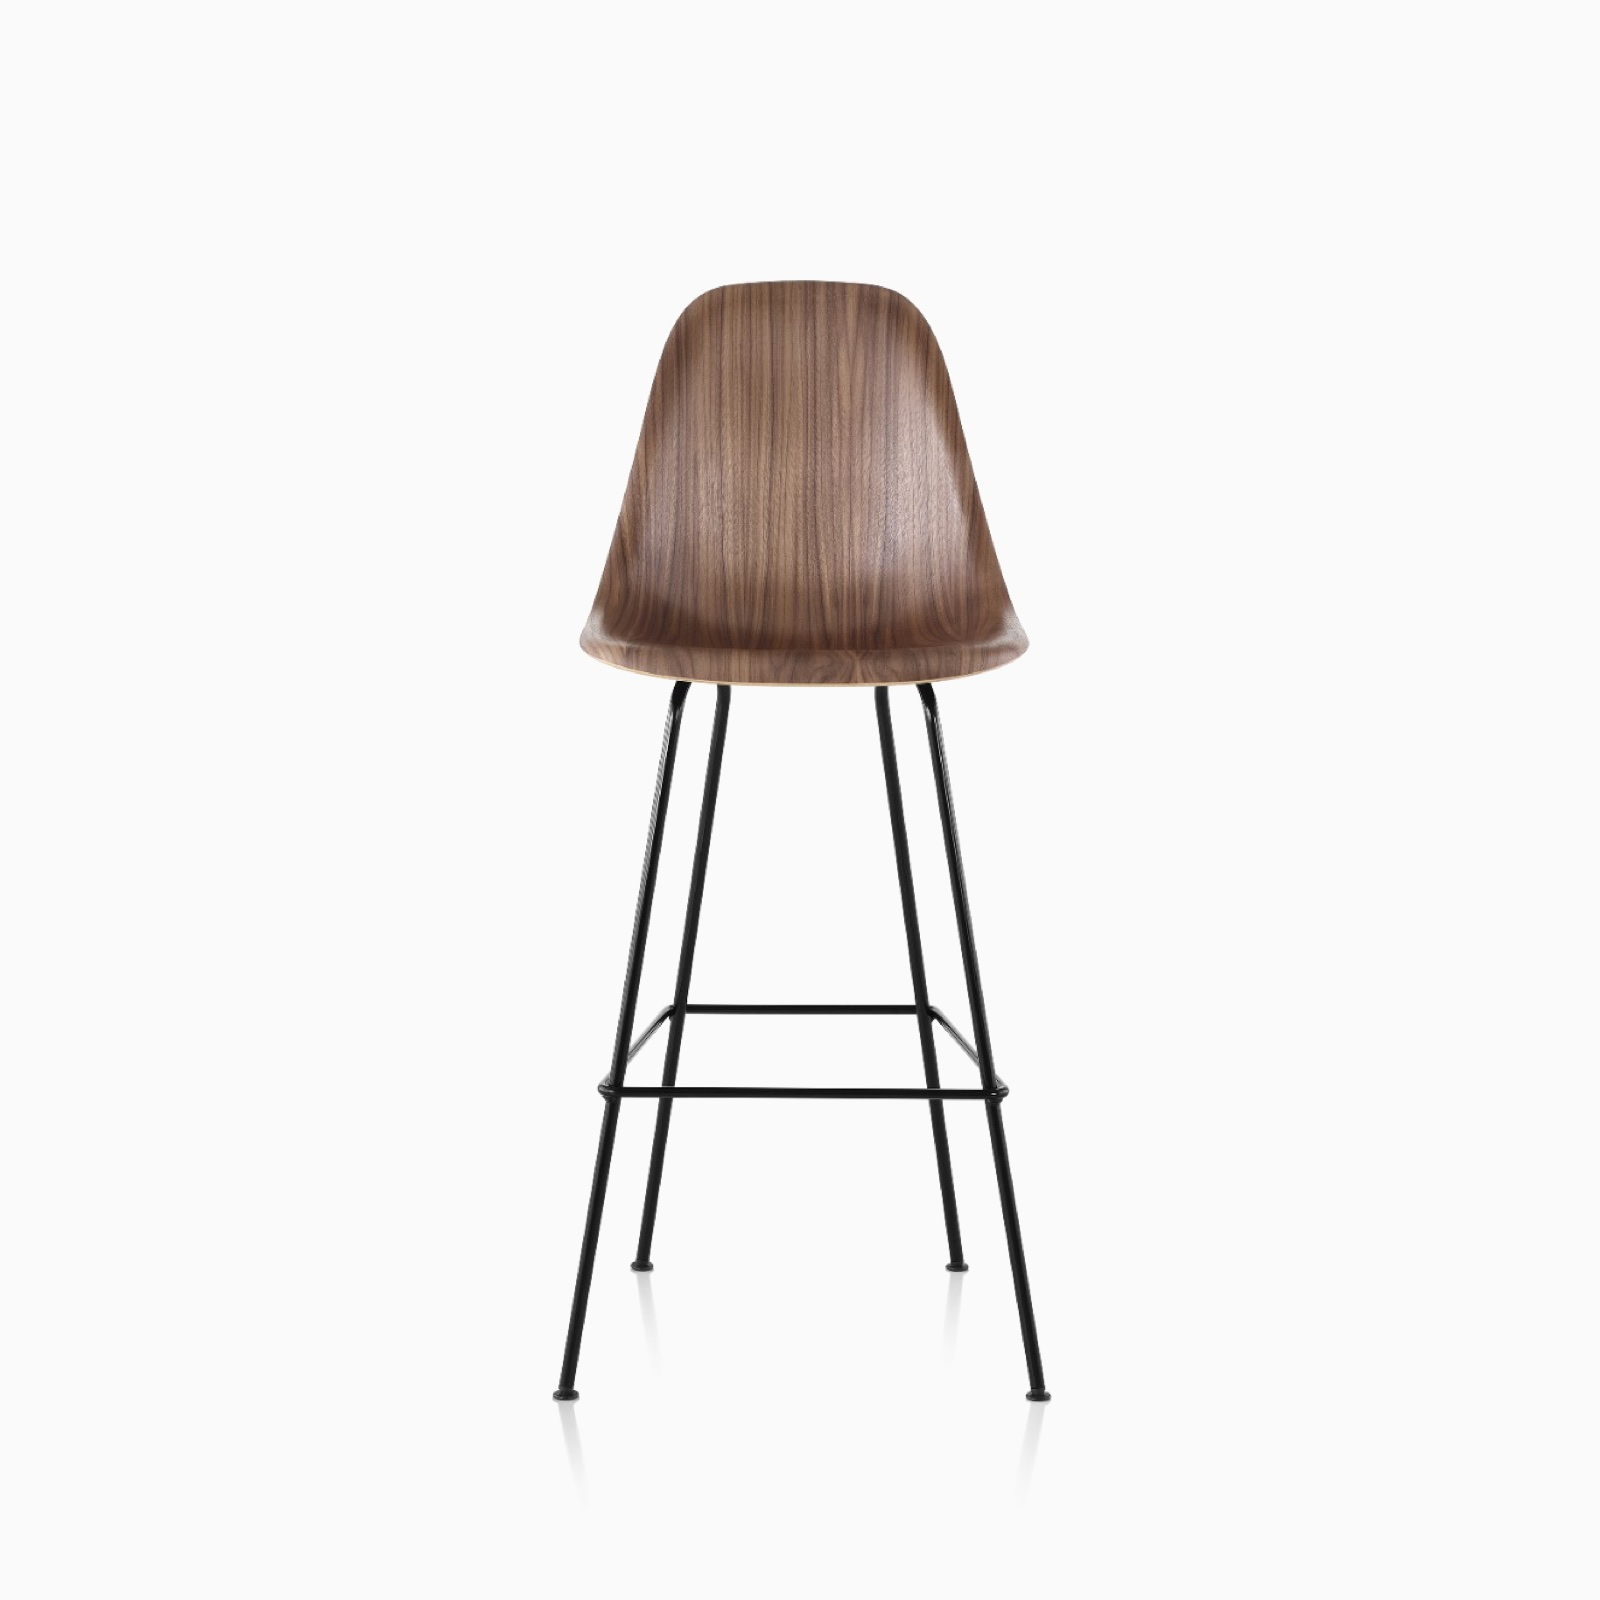 A walnut bar-height Eames Molded Wood Stool.